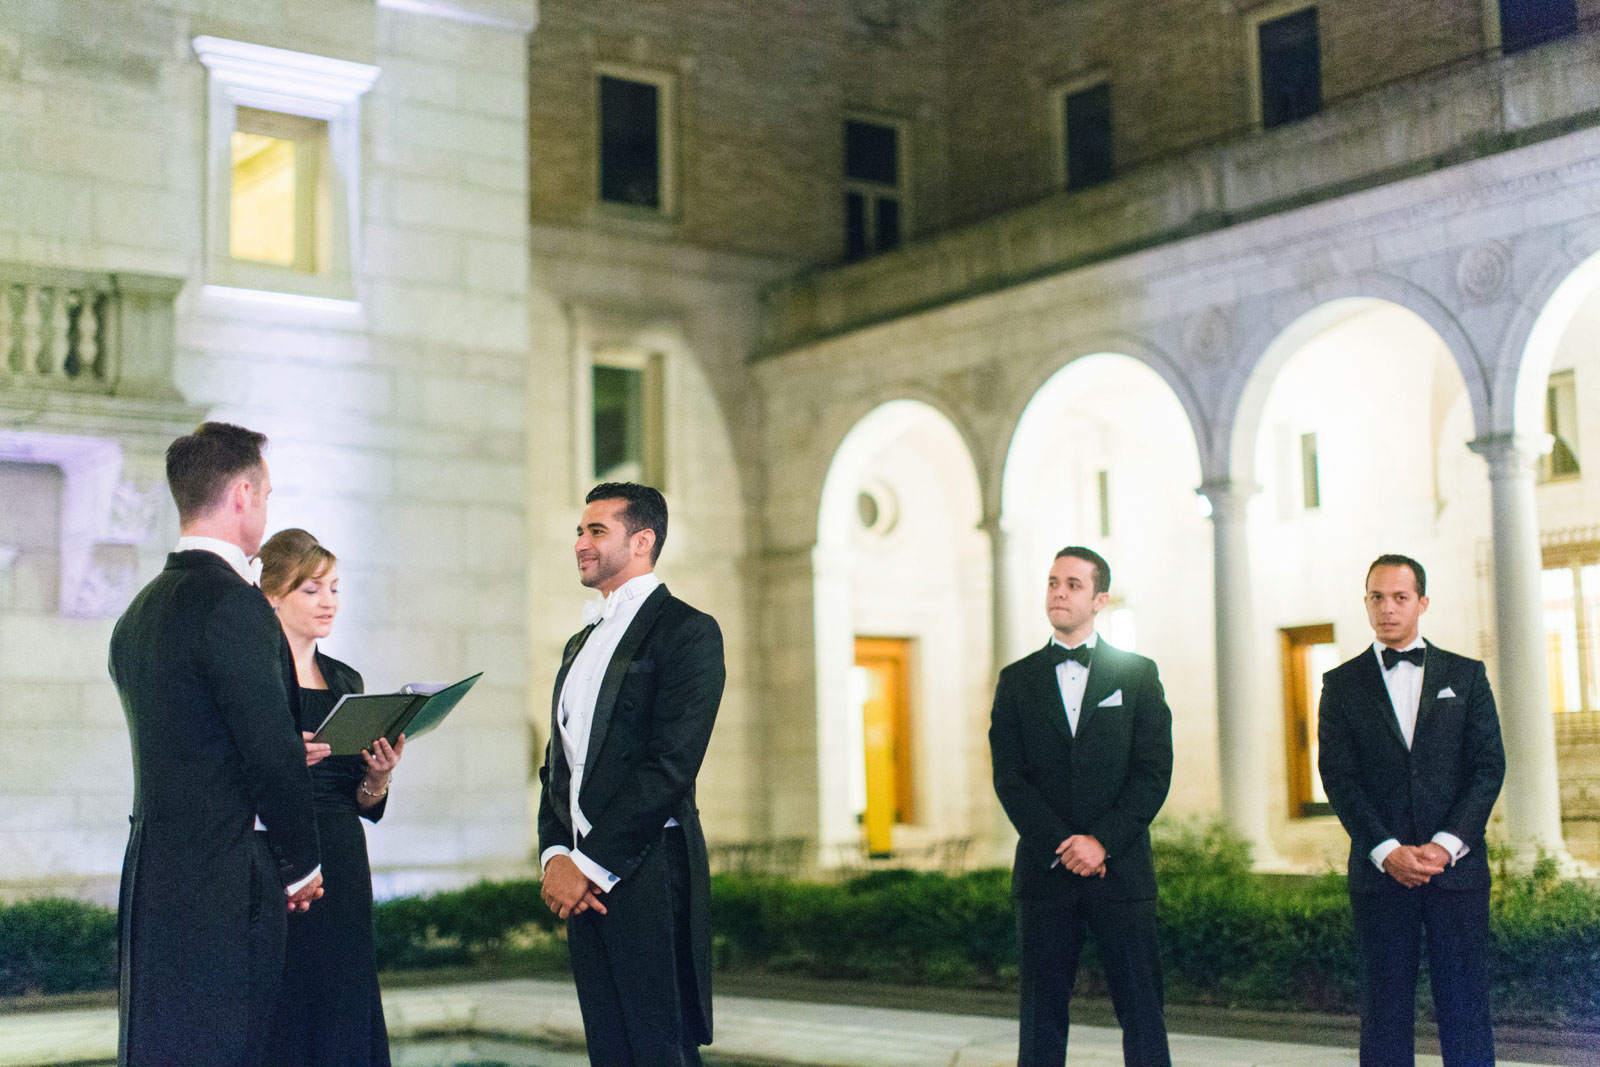 Same-sex wedding ceremony in courtyard of Boston public library at night with Roman pillars